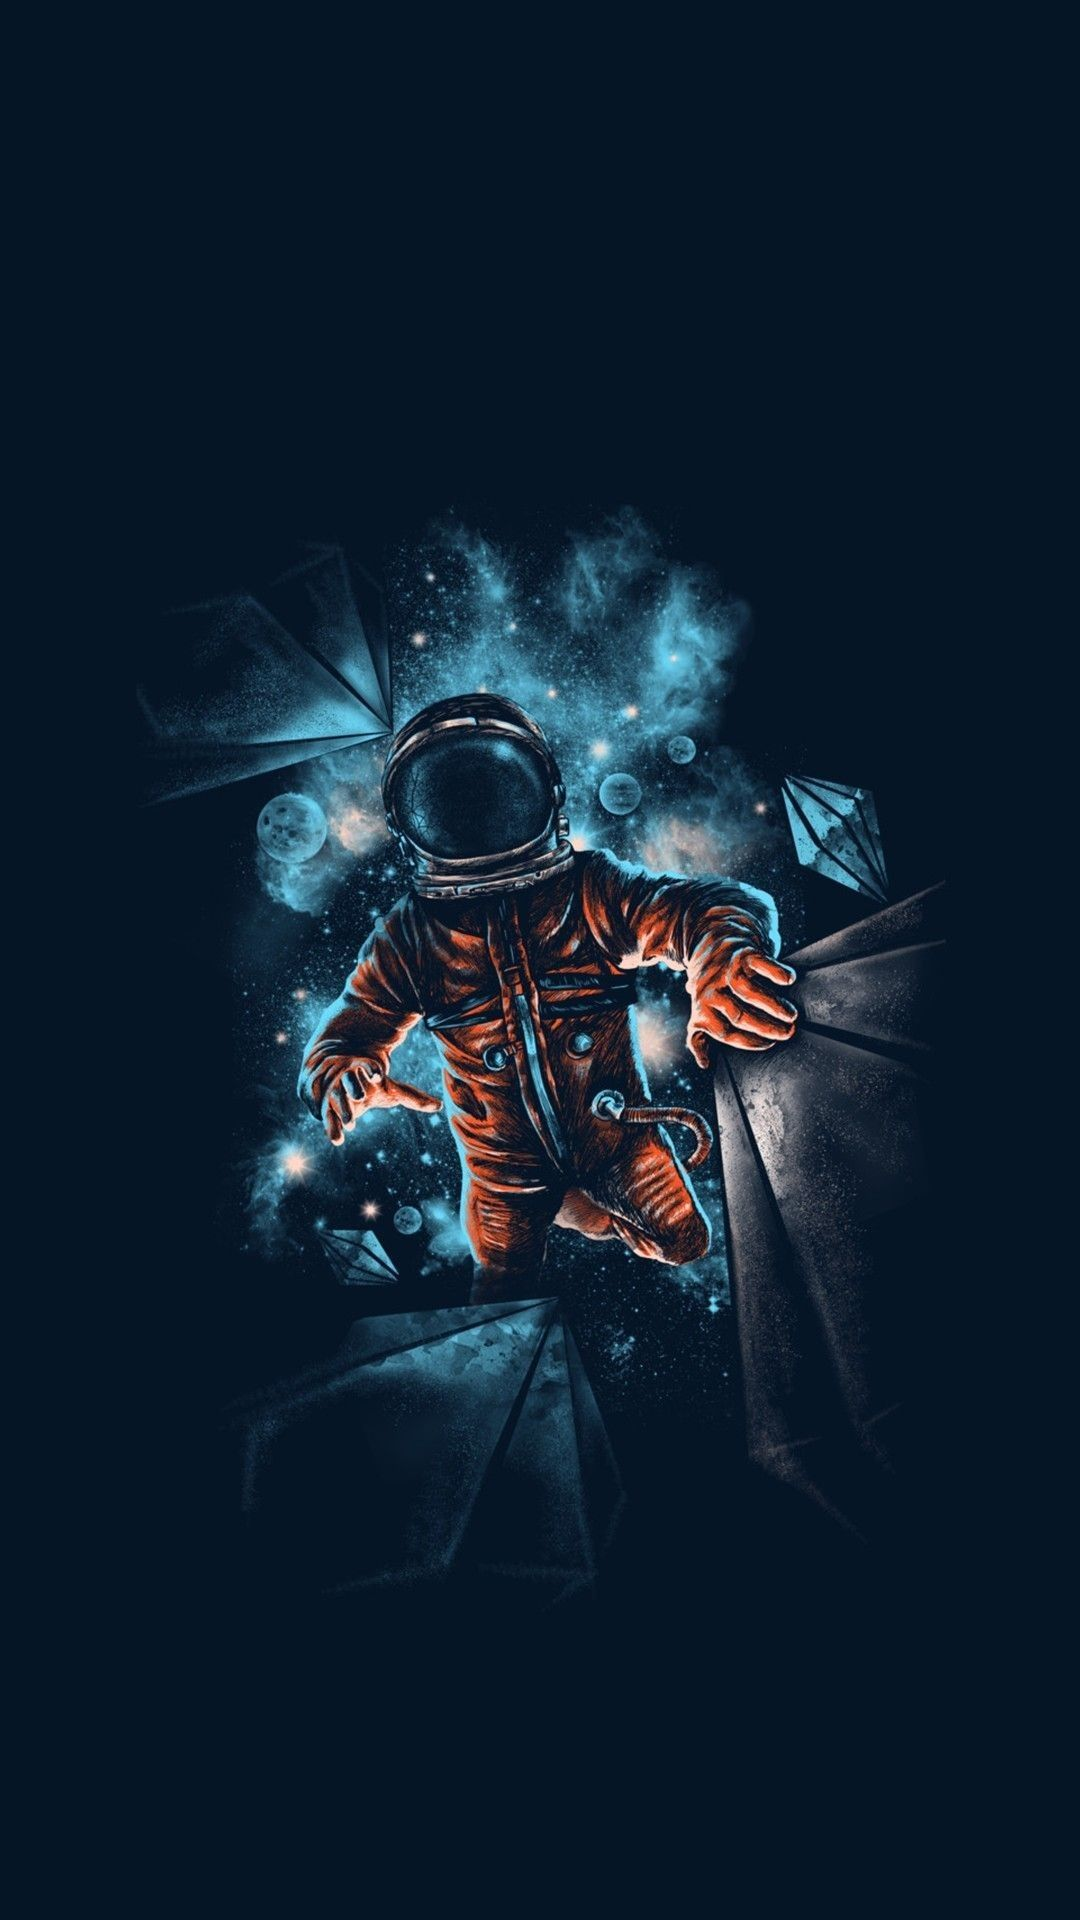 Cool Awesome Picture in 2020 Astronaut wallpaper